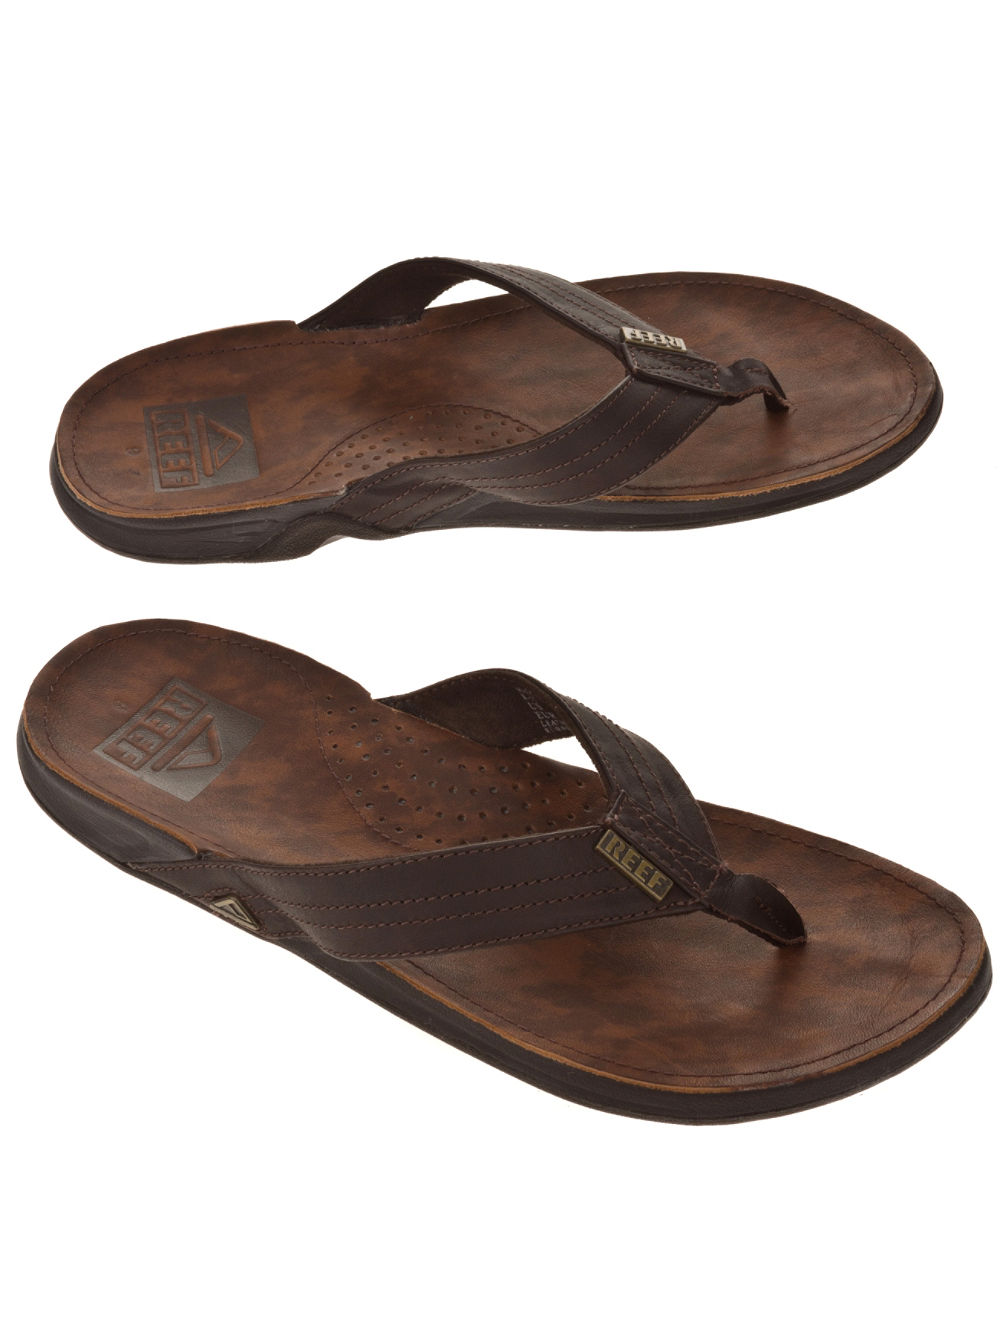 633c26e6c3a6 Buy Reef J-Bay III Sandals online at Blue Tomato